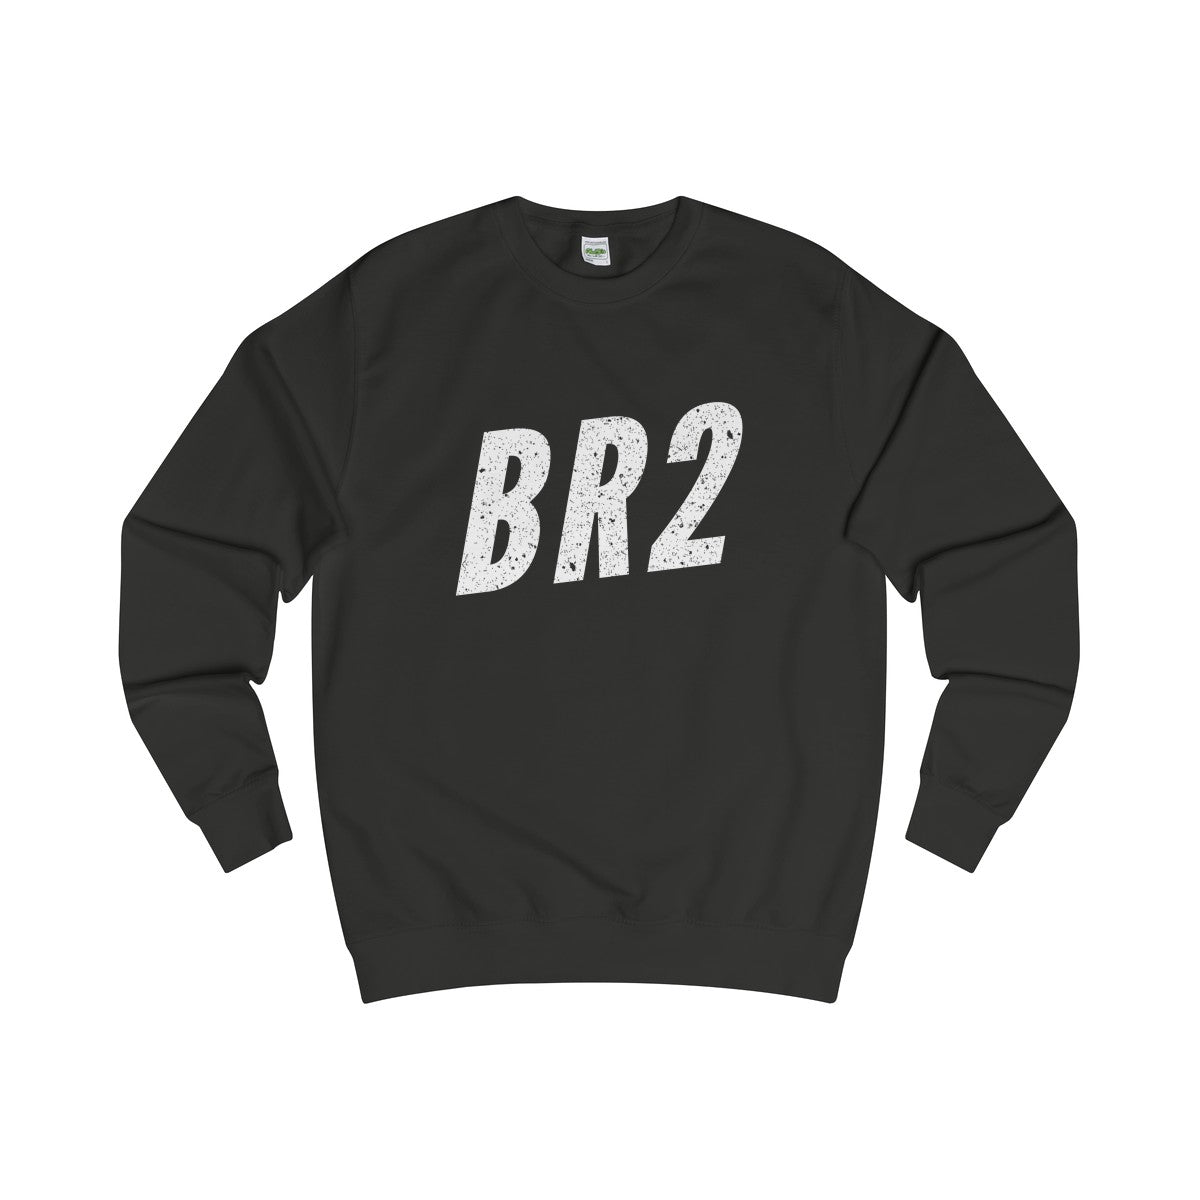 Bromley BR2 Sweater